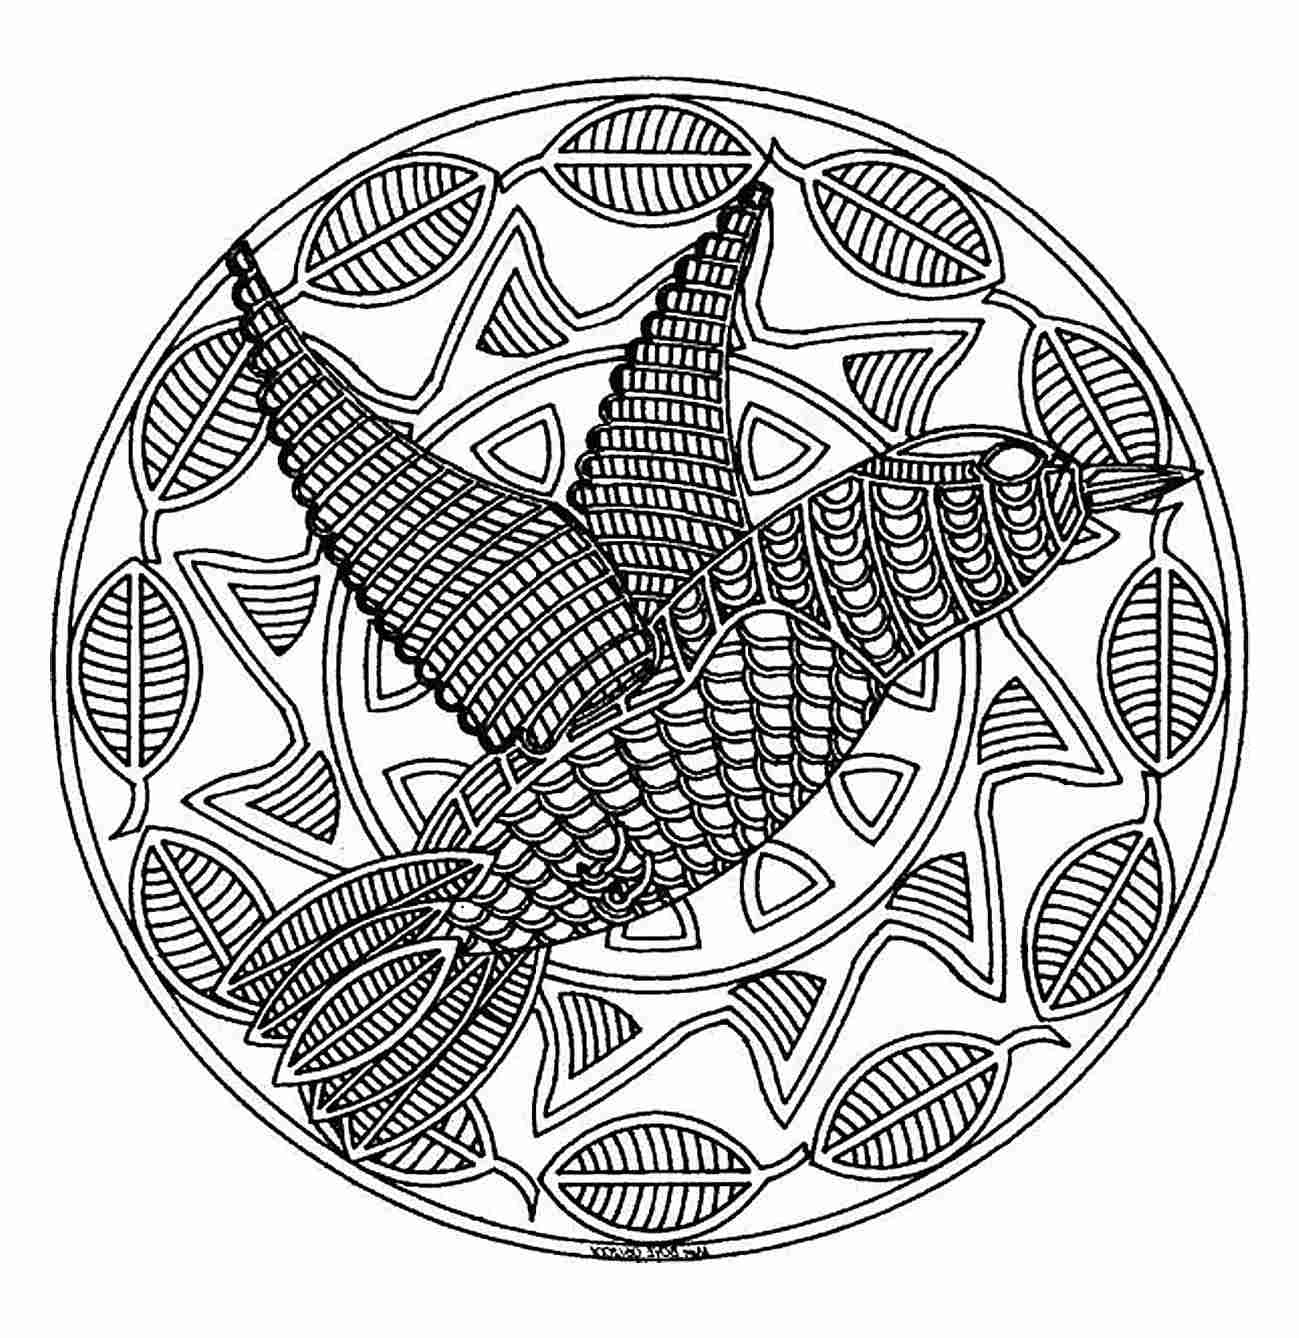 free printable mandalas coloring pages Collection-mandala to color animals free bird 579bef1c5f9b589aa 20-c